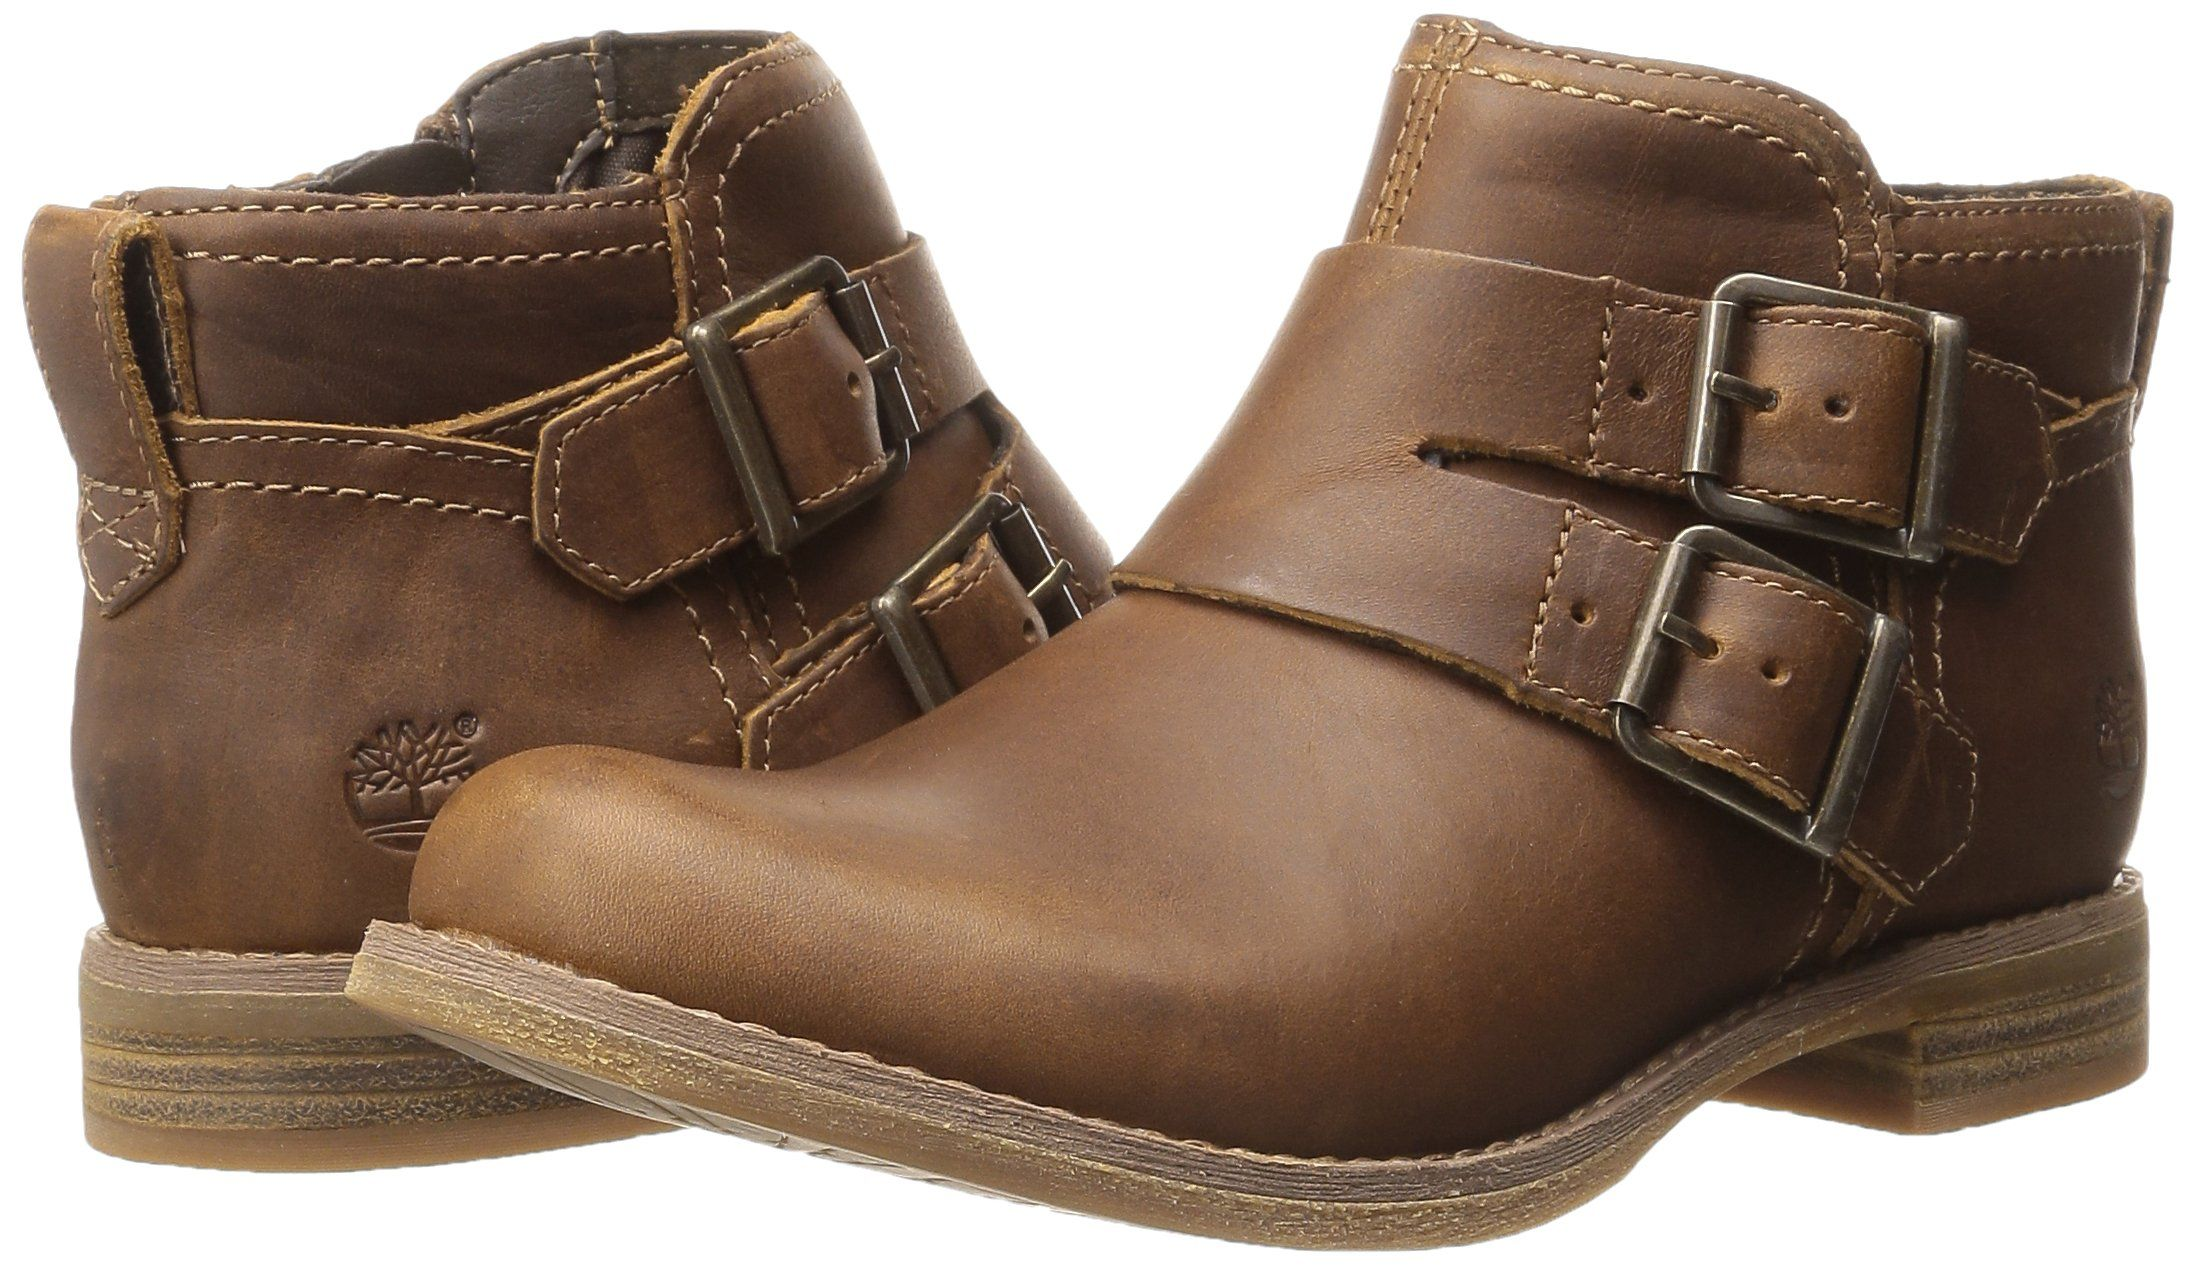 Timberland Earthkeepers Savin Hill Double Buckle Ankle Timberland- Wheat Forty Leather boots